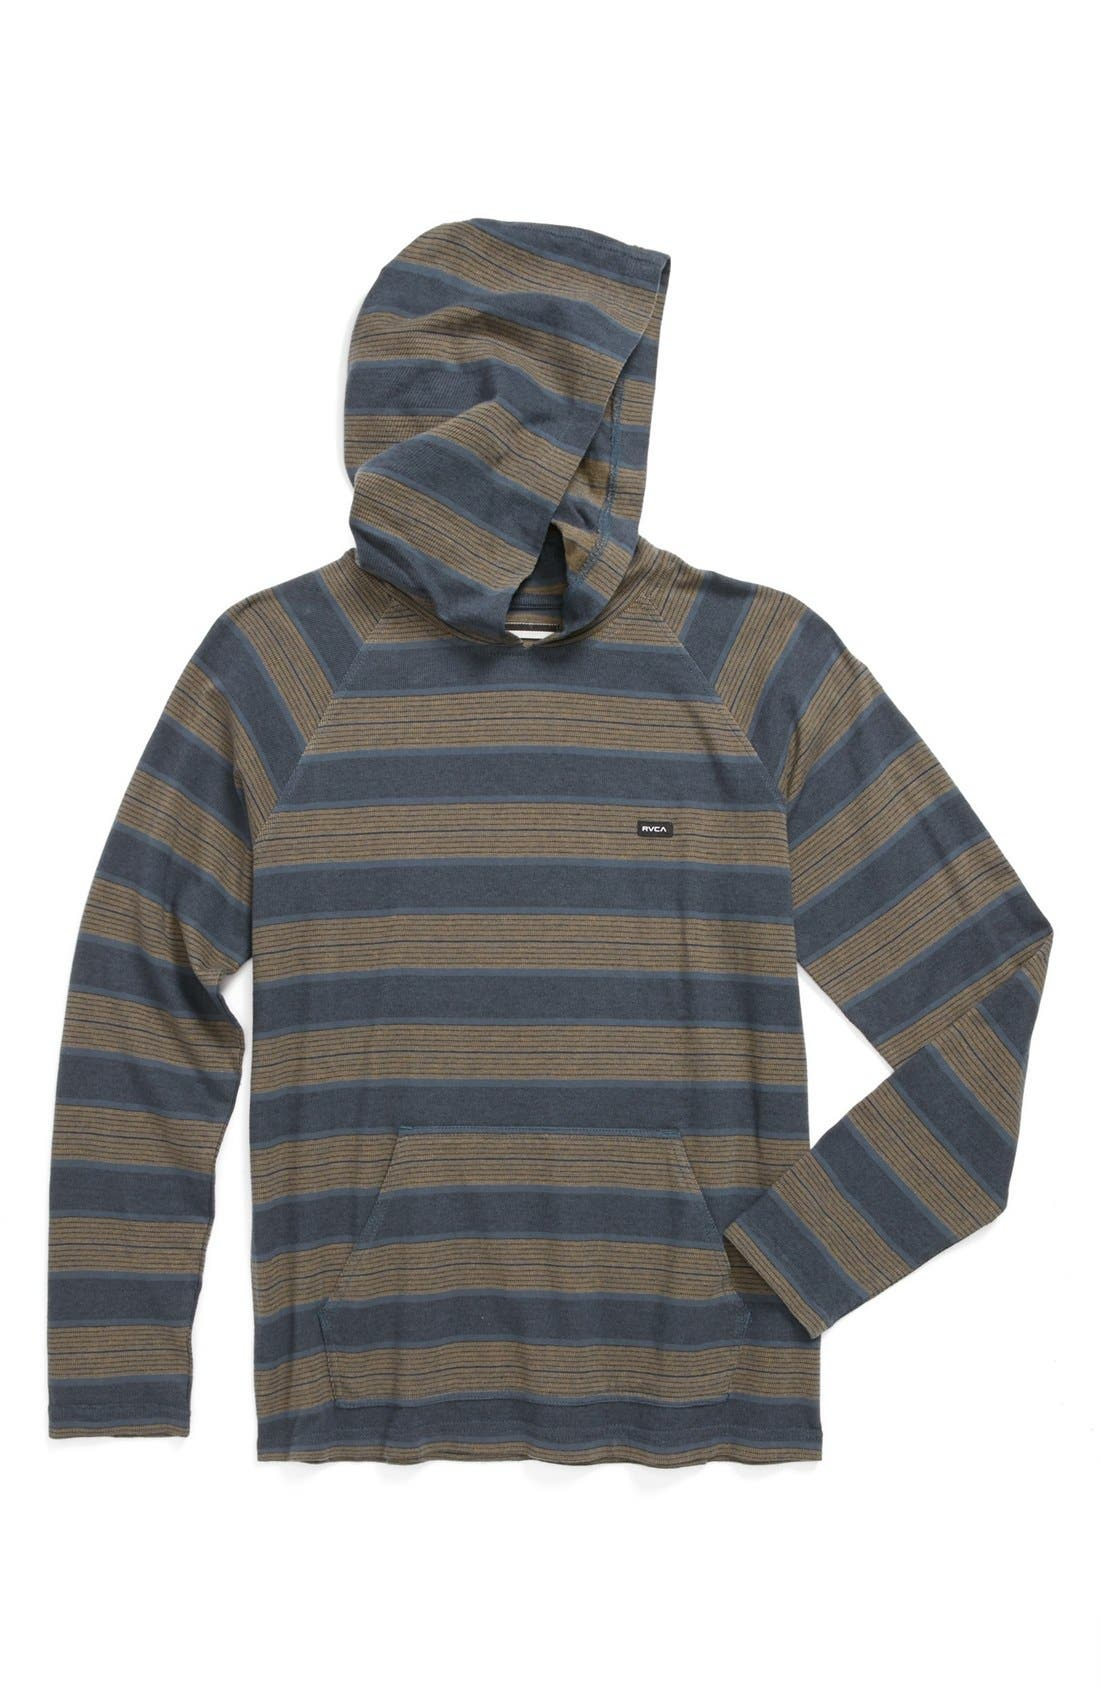 Alternate Image 1 Selected - RVCA 'Tompkin' Knit Hoodie (Big Boys)